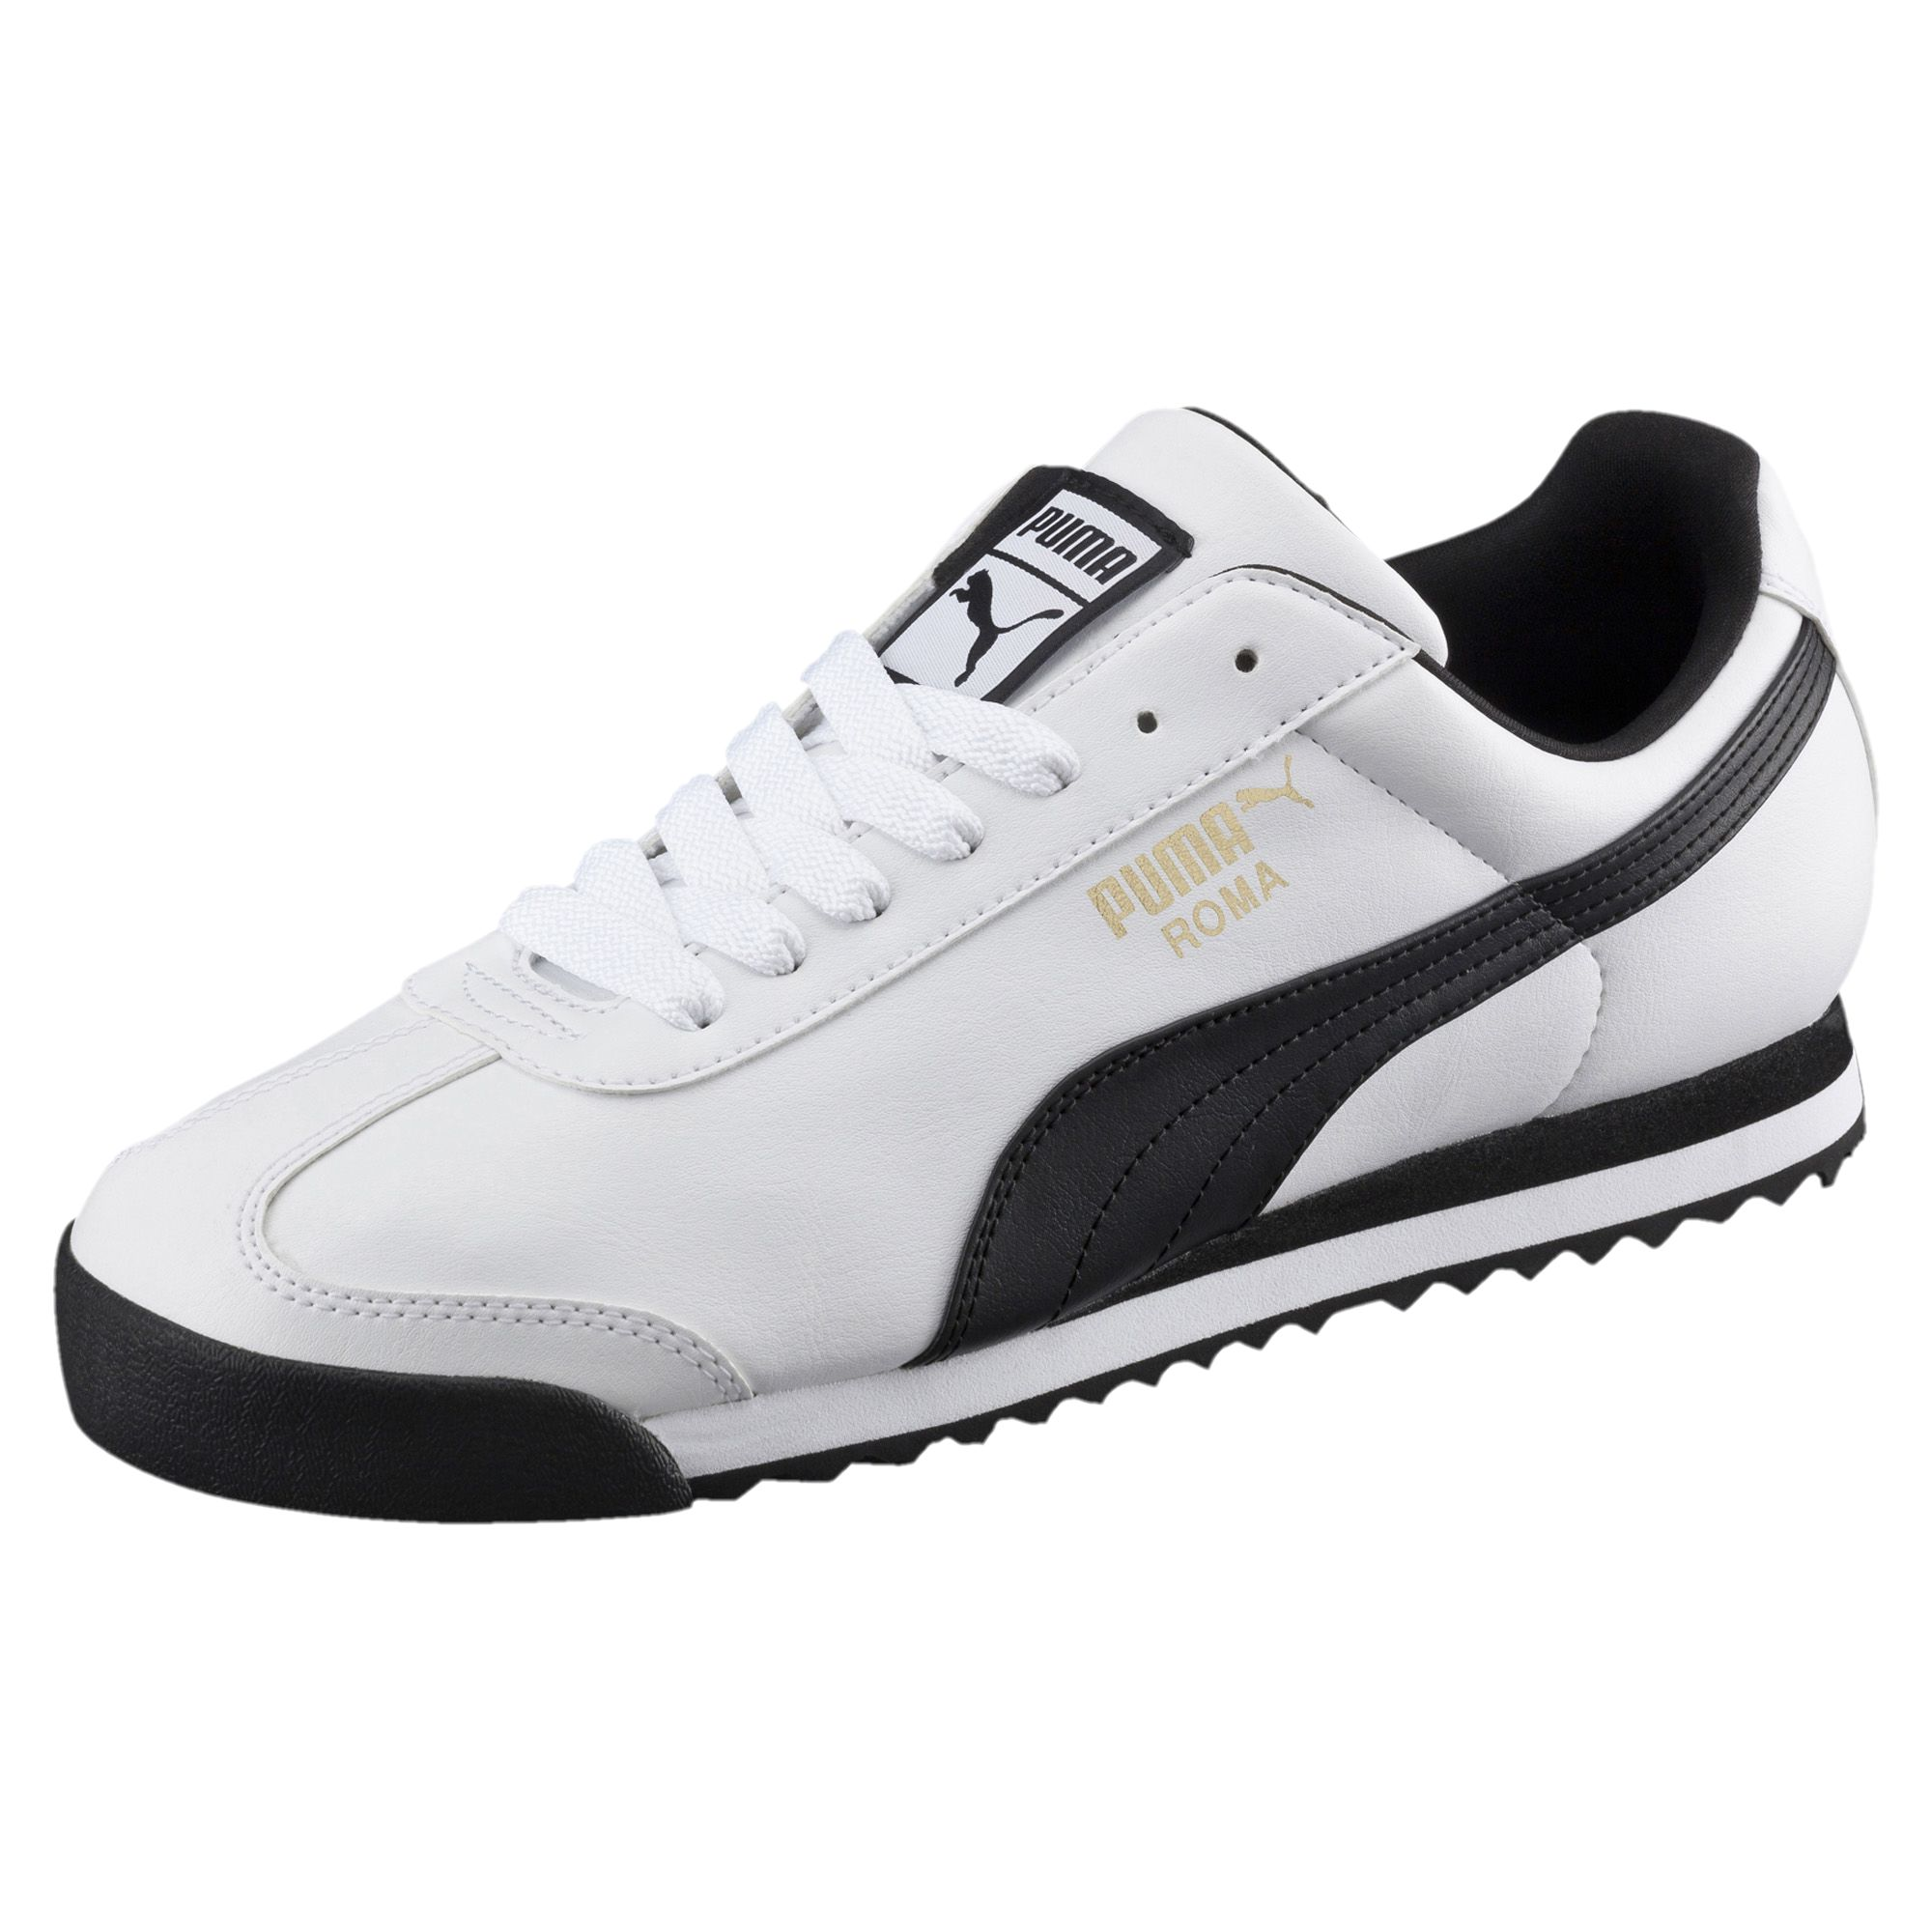 Puma Unisex Black And White Casual Shoes